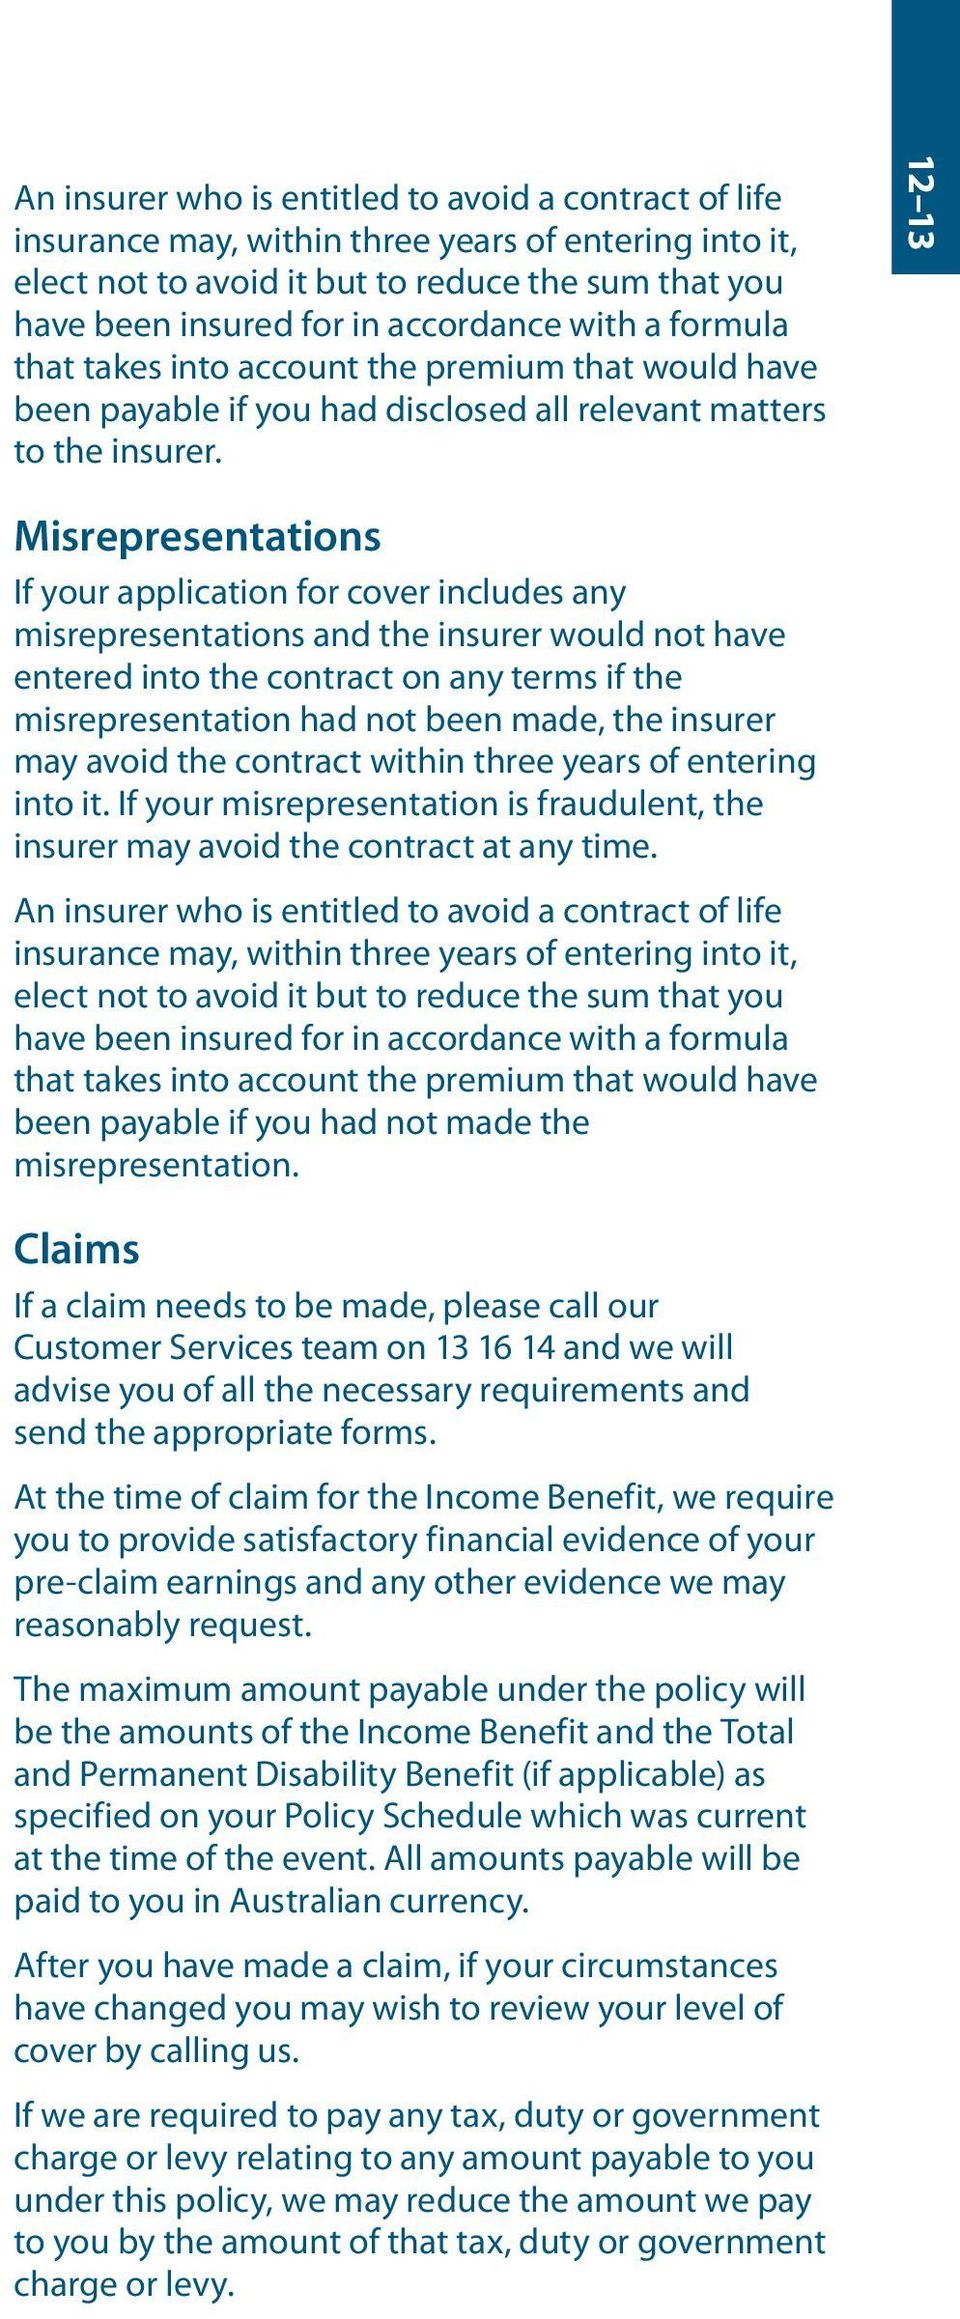 12 13 Misrepresentations If your application for cover includes any misrepresentations and the insurer would not have entered into the contract on any terms if the misrepresentation had not been